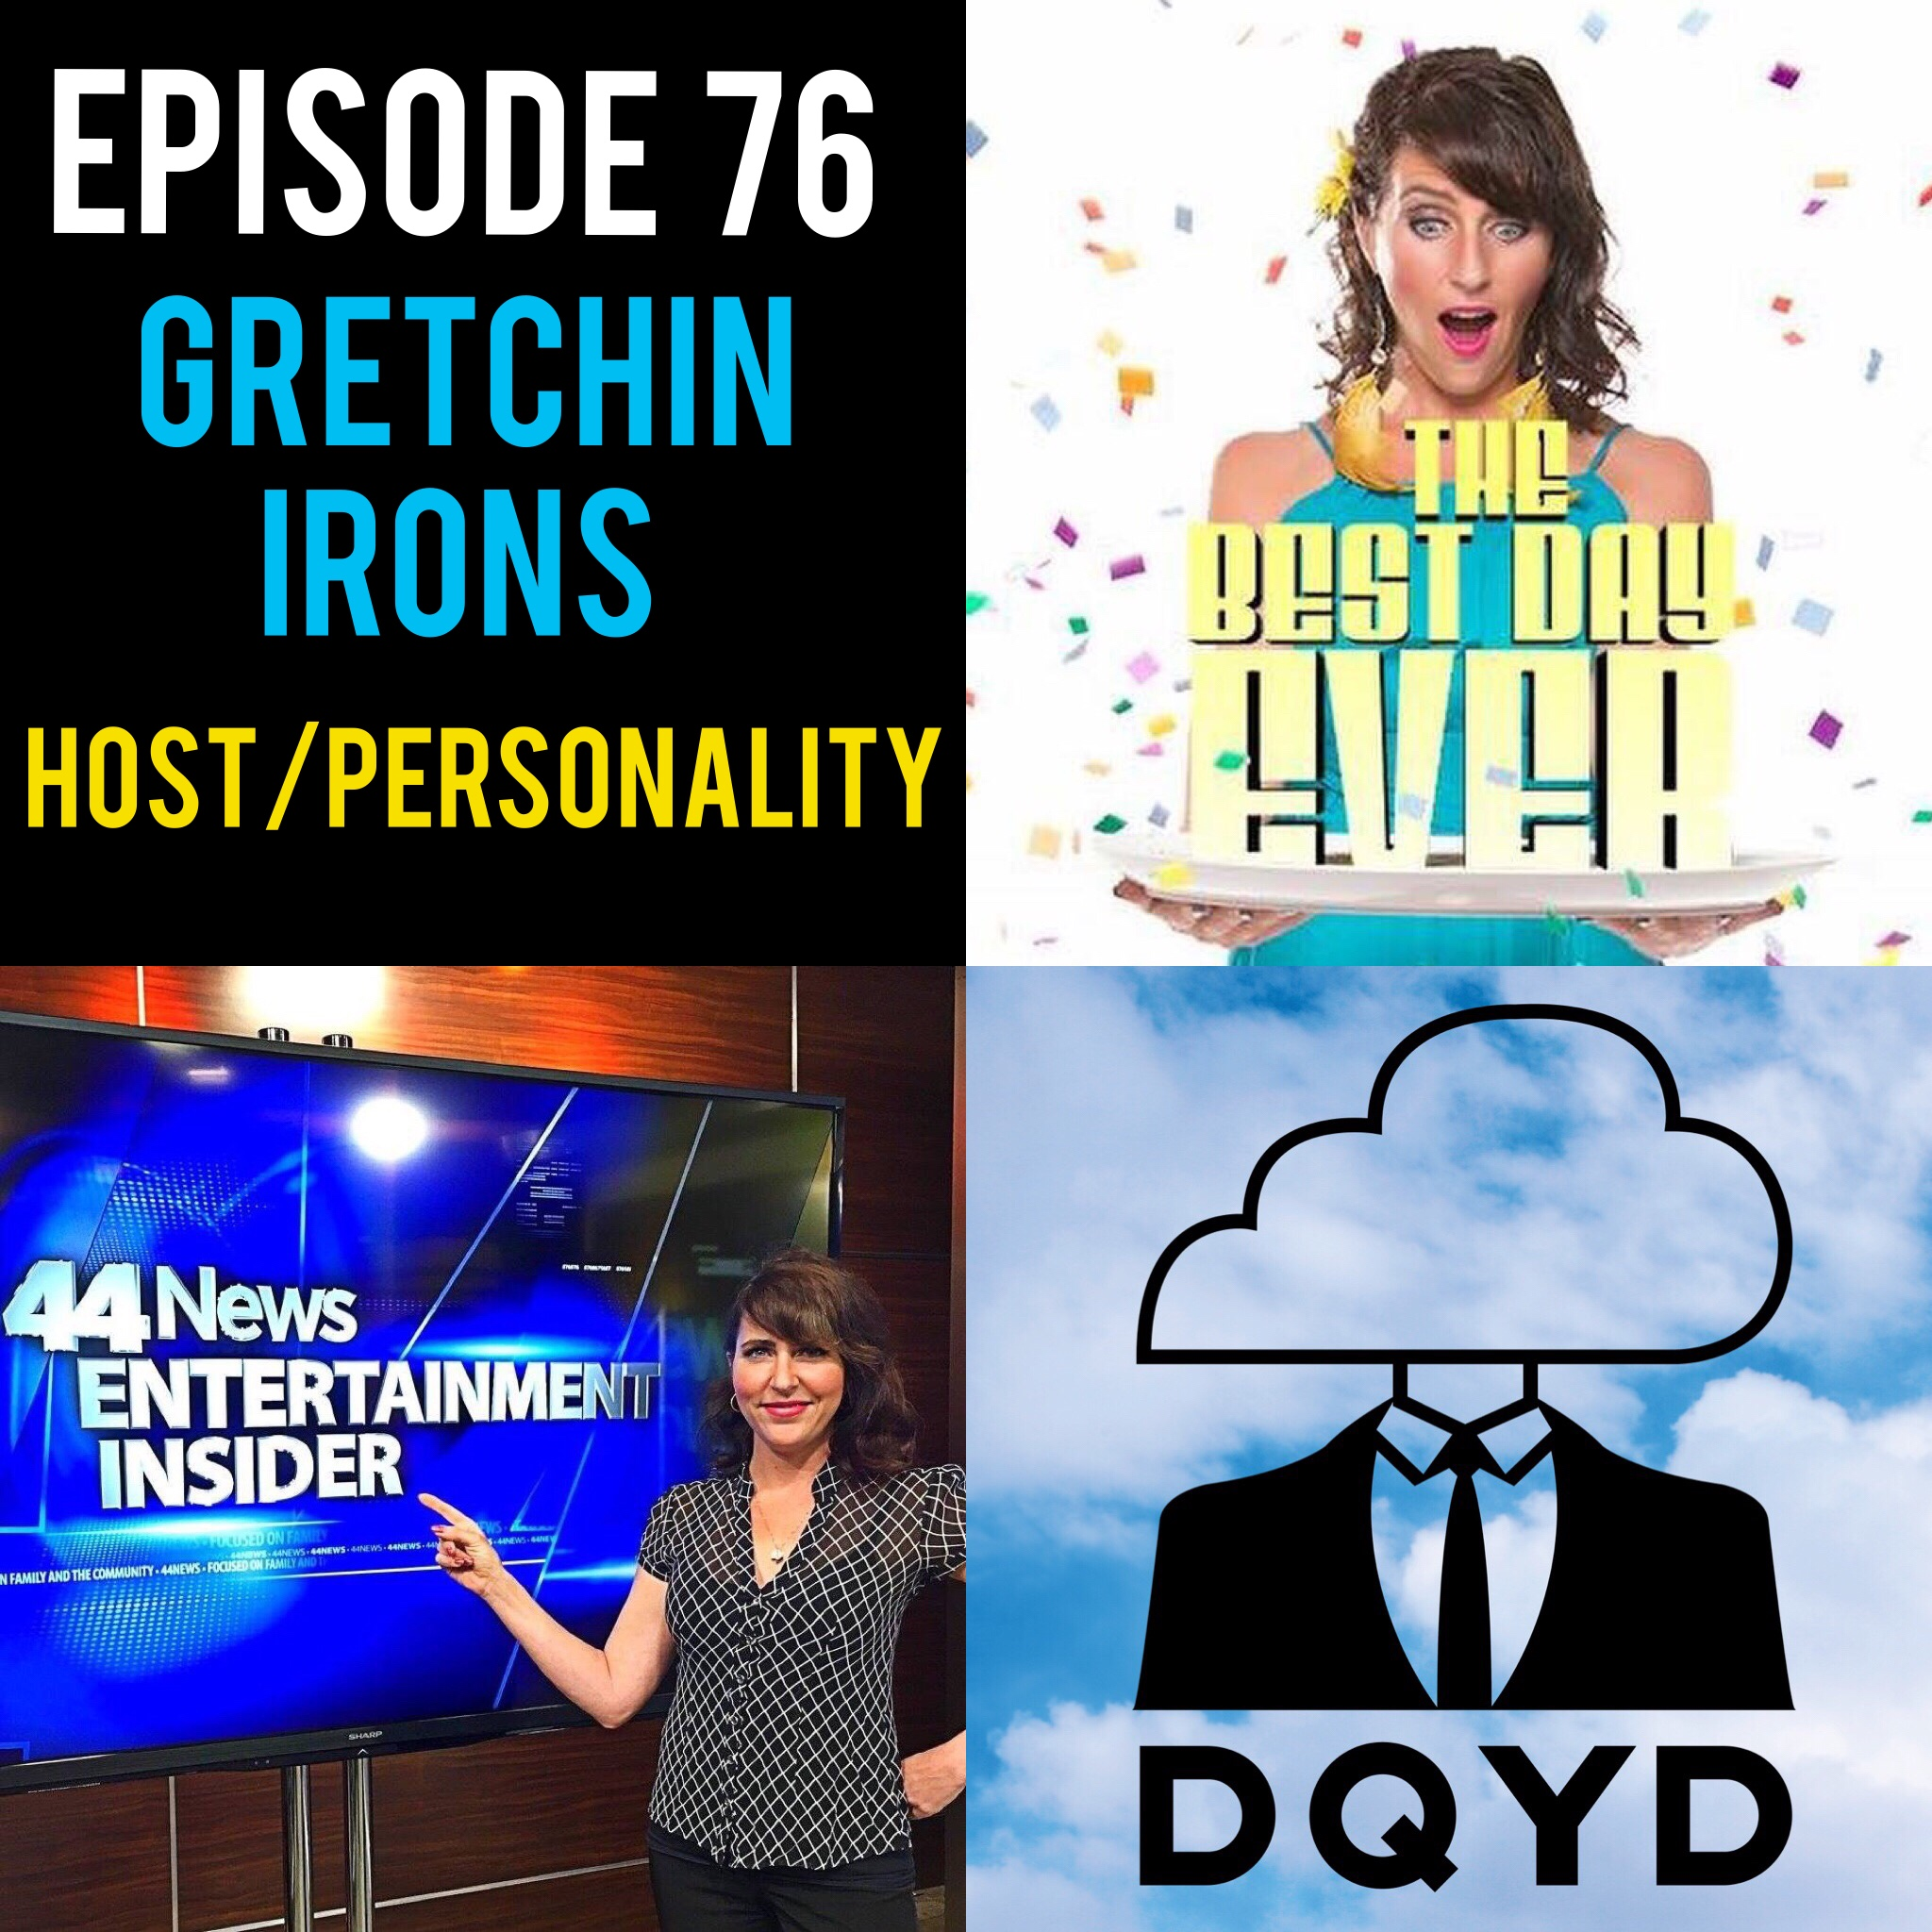 """Episode 76 with Host and TV Personality: Gretchin Irons! Host of """"The Best Day Ever"""", Gretchin is a whirlwind of energy, laughter and information on fun events happening around the city. Immensely talented behind and in front of the camera she details the hard work and sacrifices it takes to make a dream a reality. Follow her along by visiting:  https://www.facebook.com/TheBestDayEverEvv/   Song of the week is """"Make a Little Time"""" from the rad dudes The Jangle Sheep. Check em out! https://www.bandmix.com/sean1092506/"""